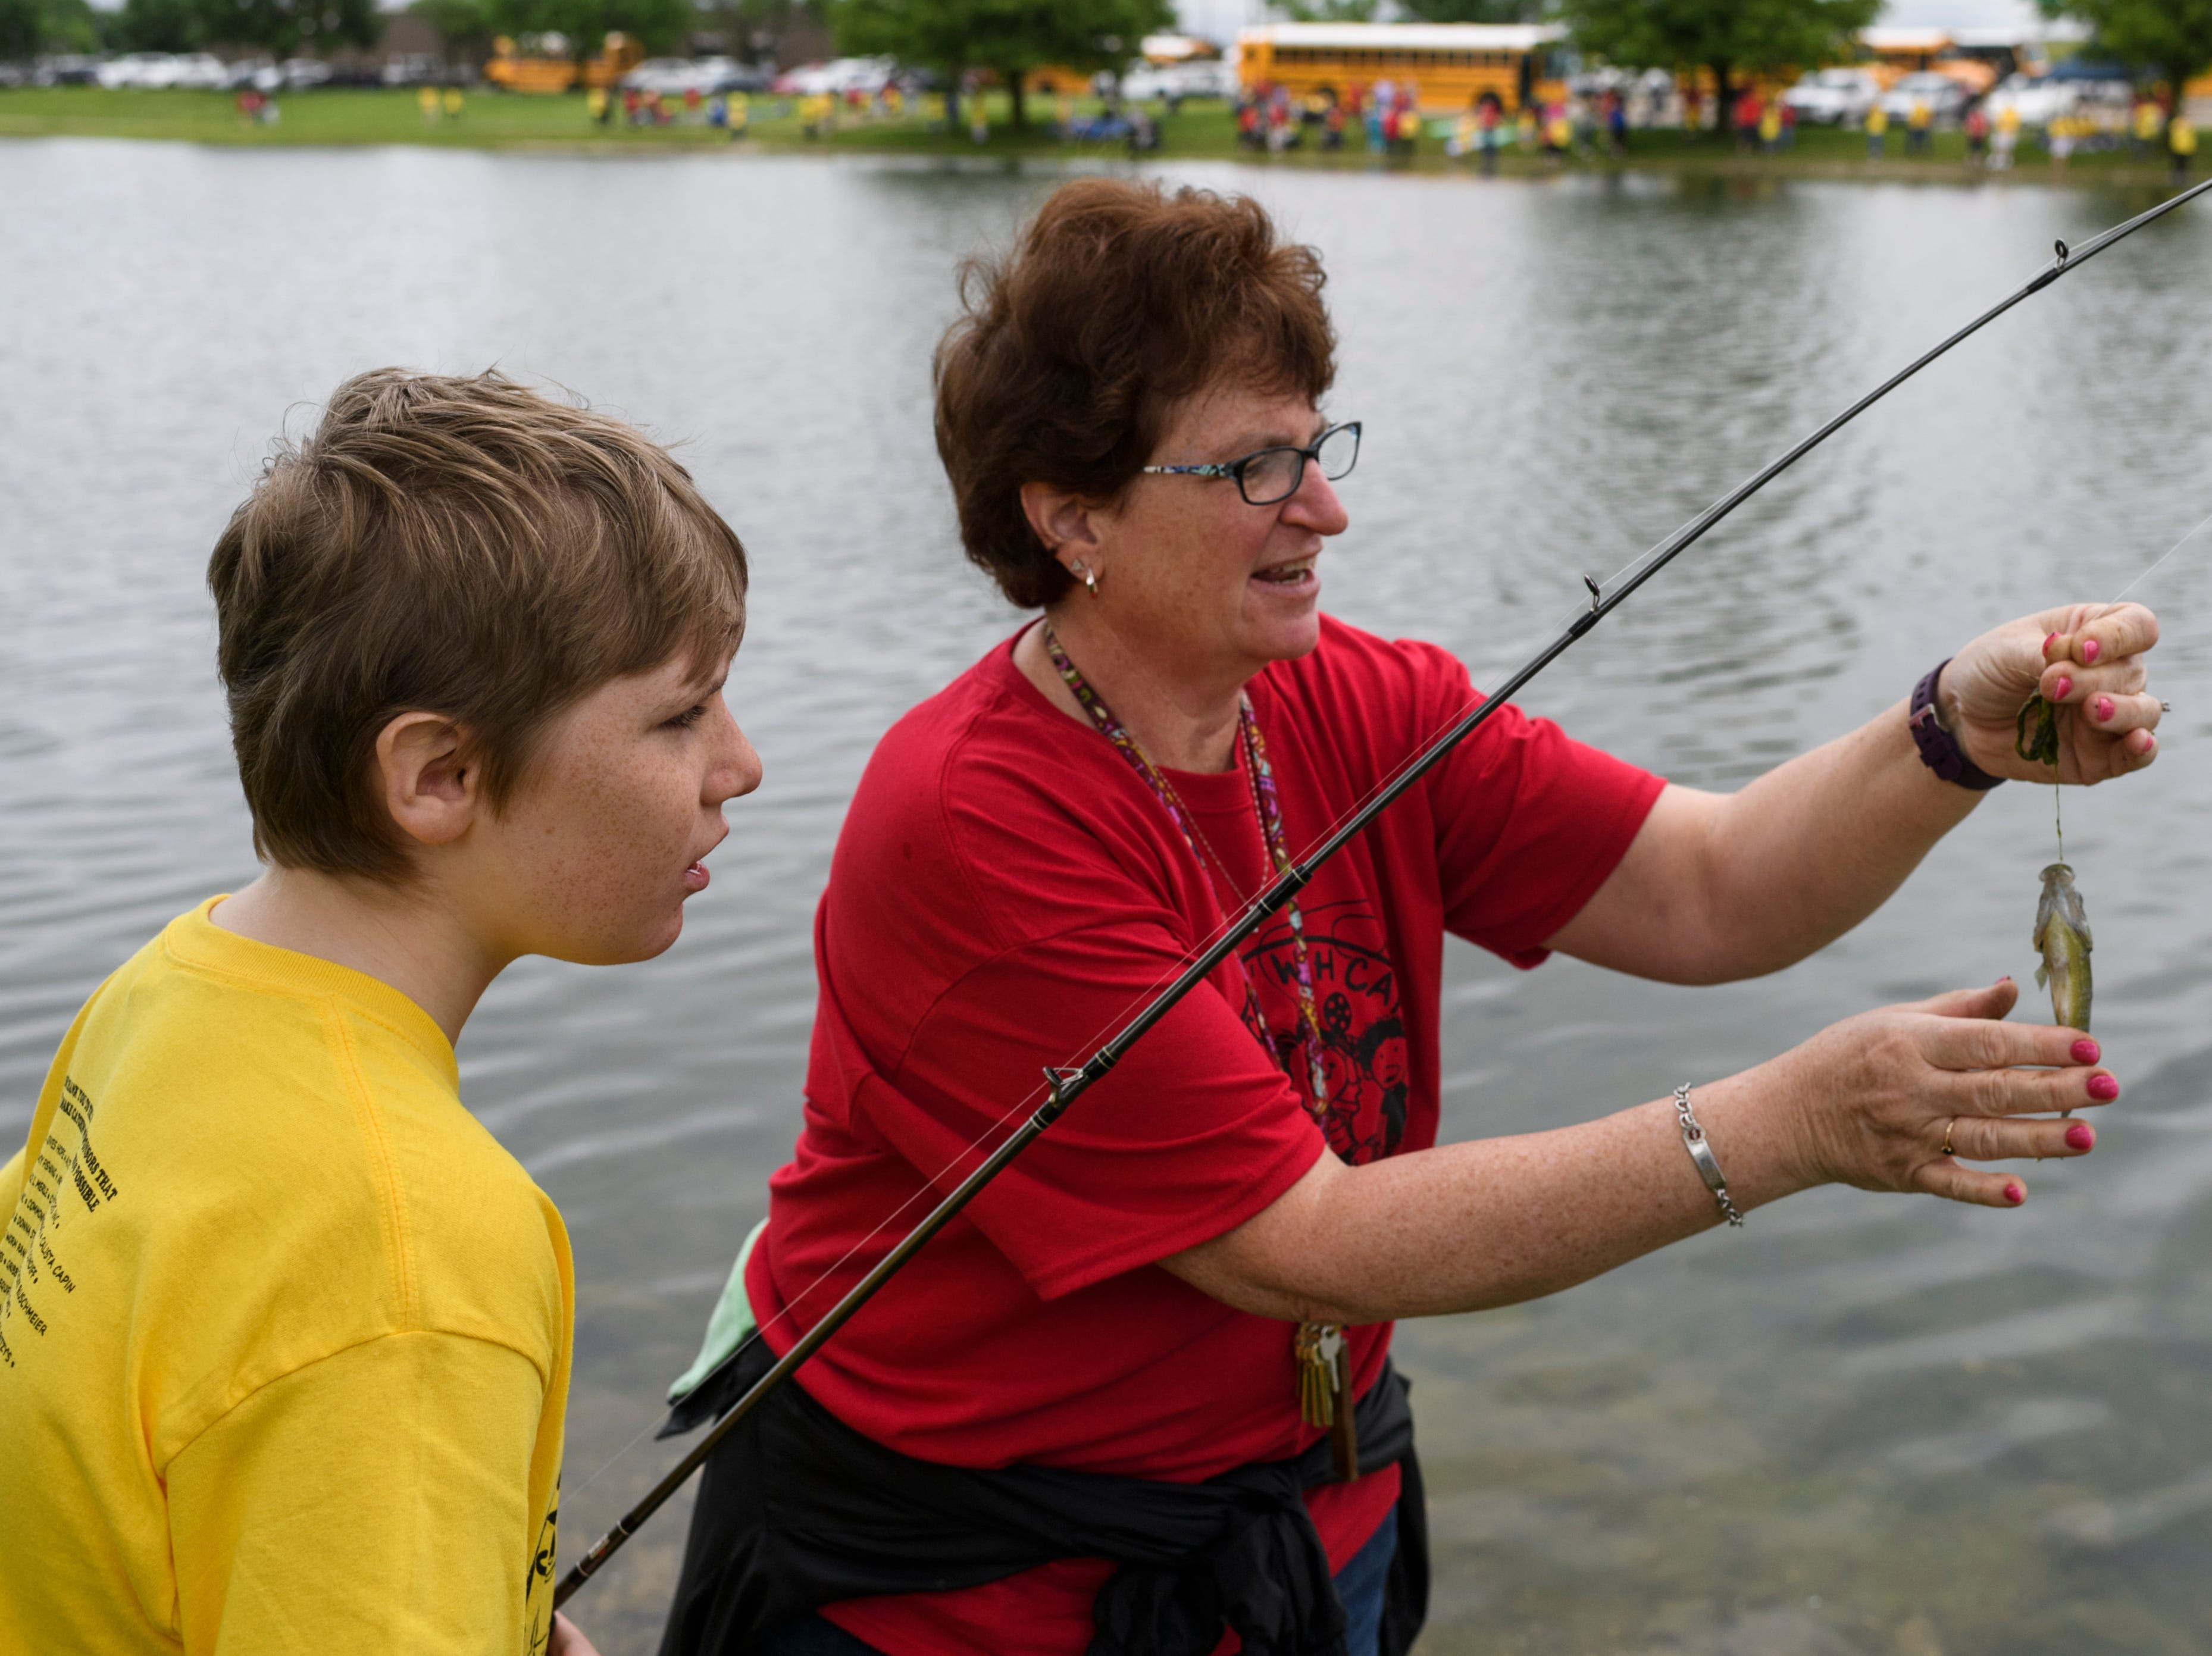 """Oscar Farley, left, a North Junior High student, receives help from special education aide Maryann Dunbar, right, as they get his first caught fish off the line during the 12th annual """"Catchin' with Capin"""" event at Eagle Lake in Evansville, Ind., Friday, May 3, 2019. The annual outing gives children with disabilities an opportunity to enjoy a day of fishing."""